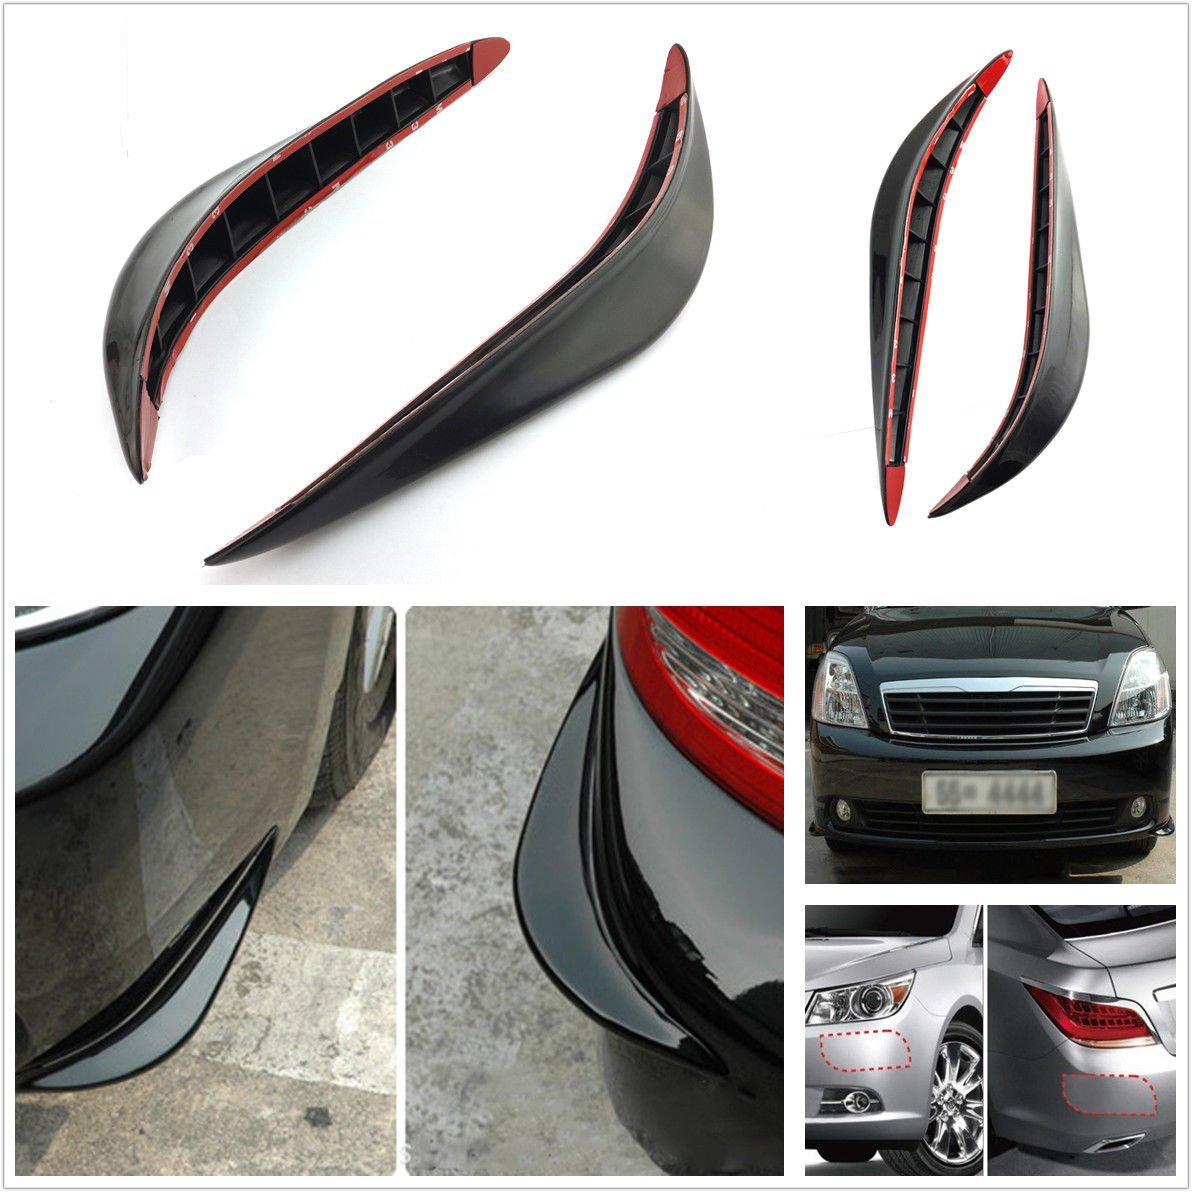 2x Universal Car Carbon Fiber Anti-rub Protector Bars Body Corner Bumper Guard Z